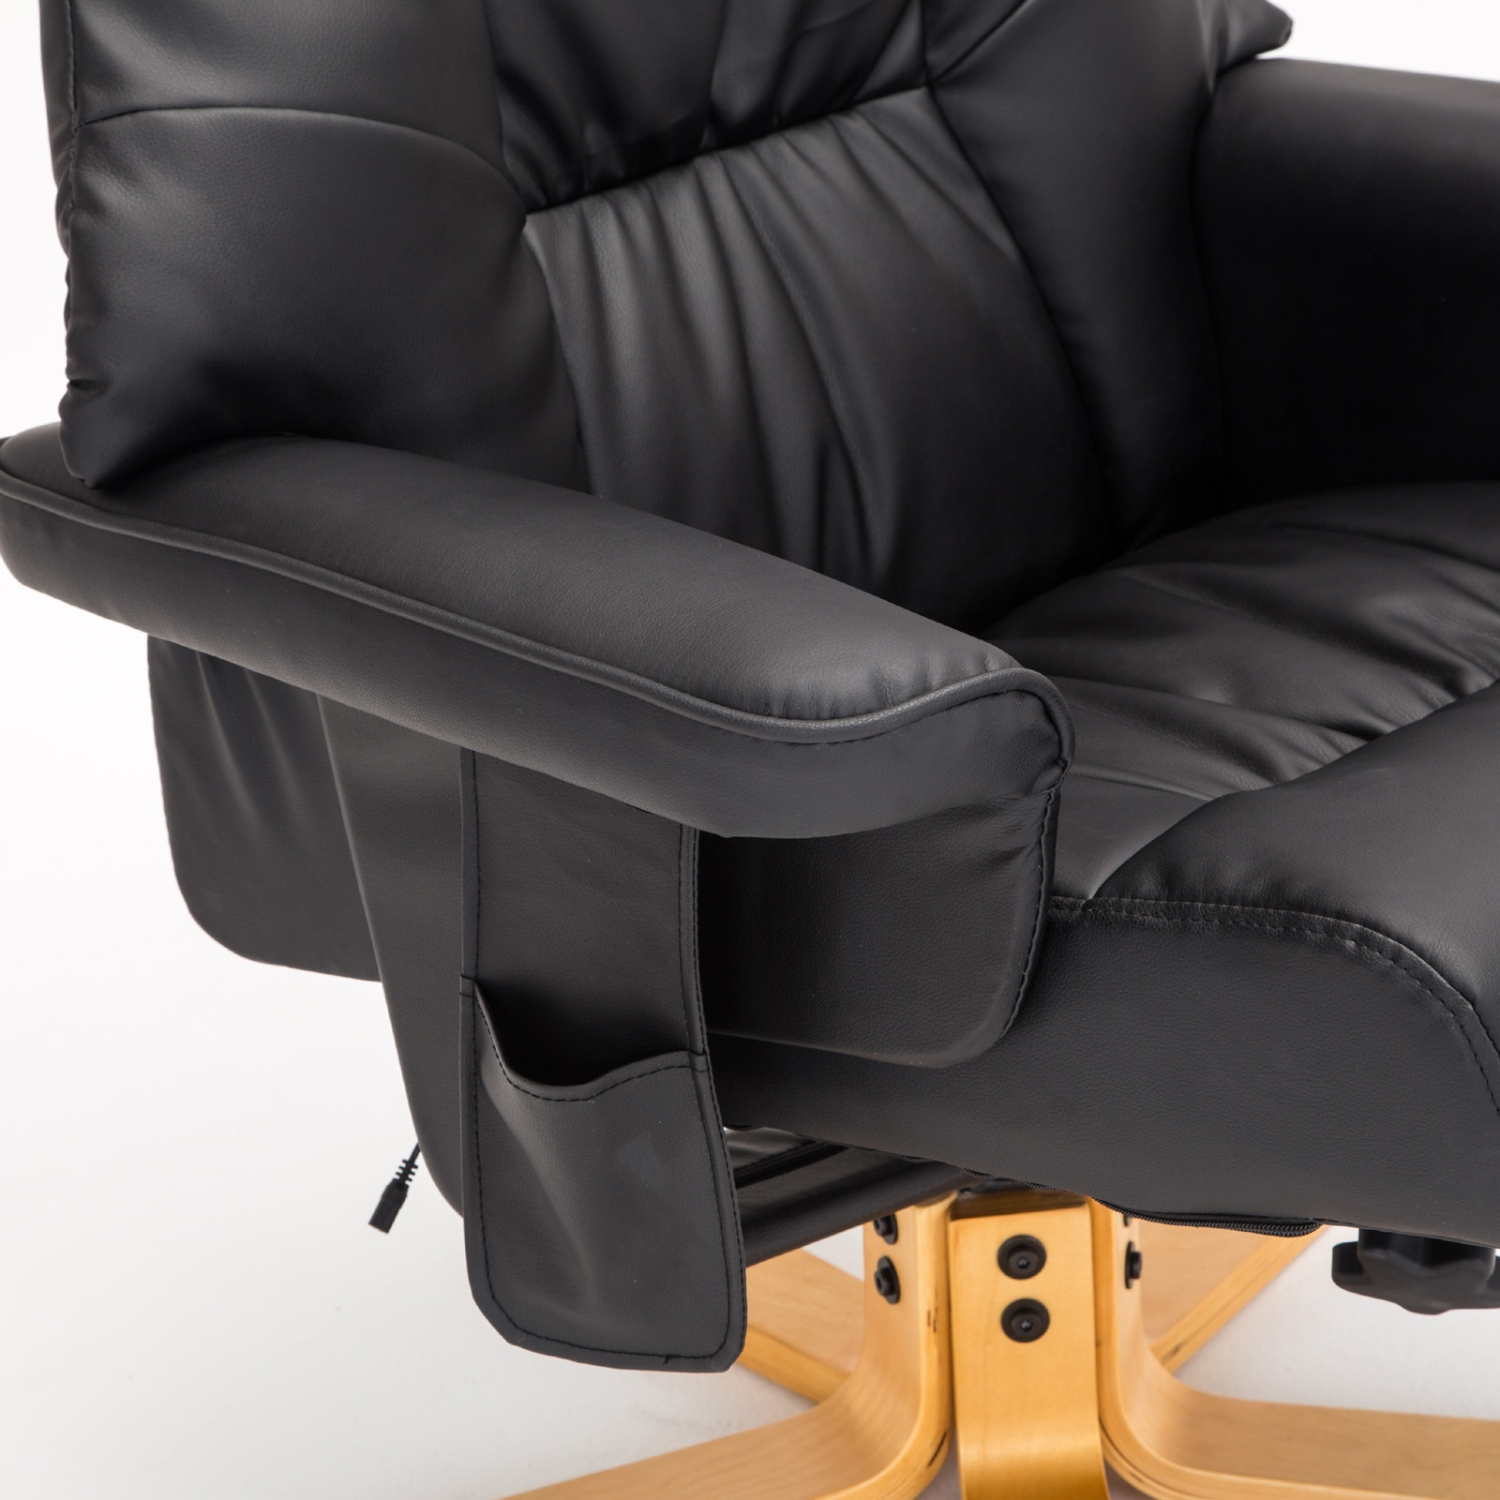 Black massage recliner chair leather with foot stool swivel armchair office ebay - Swivel feet for chairs ...